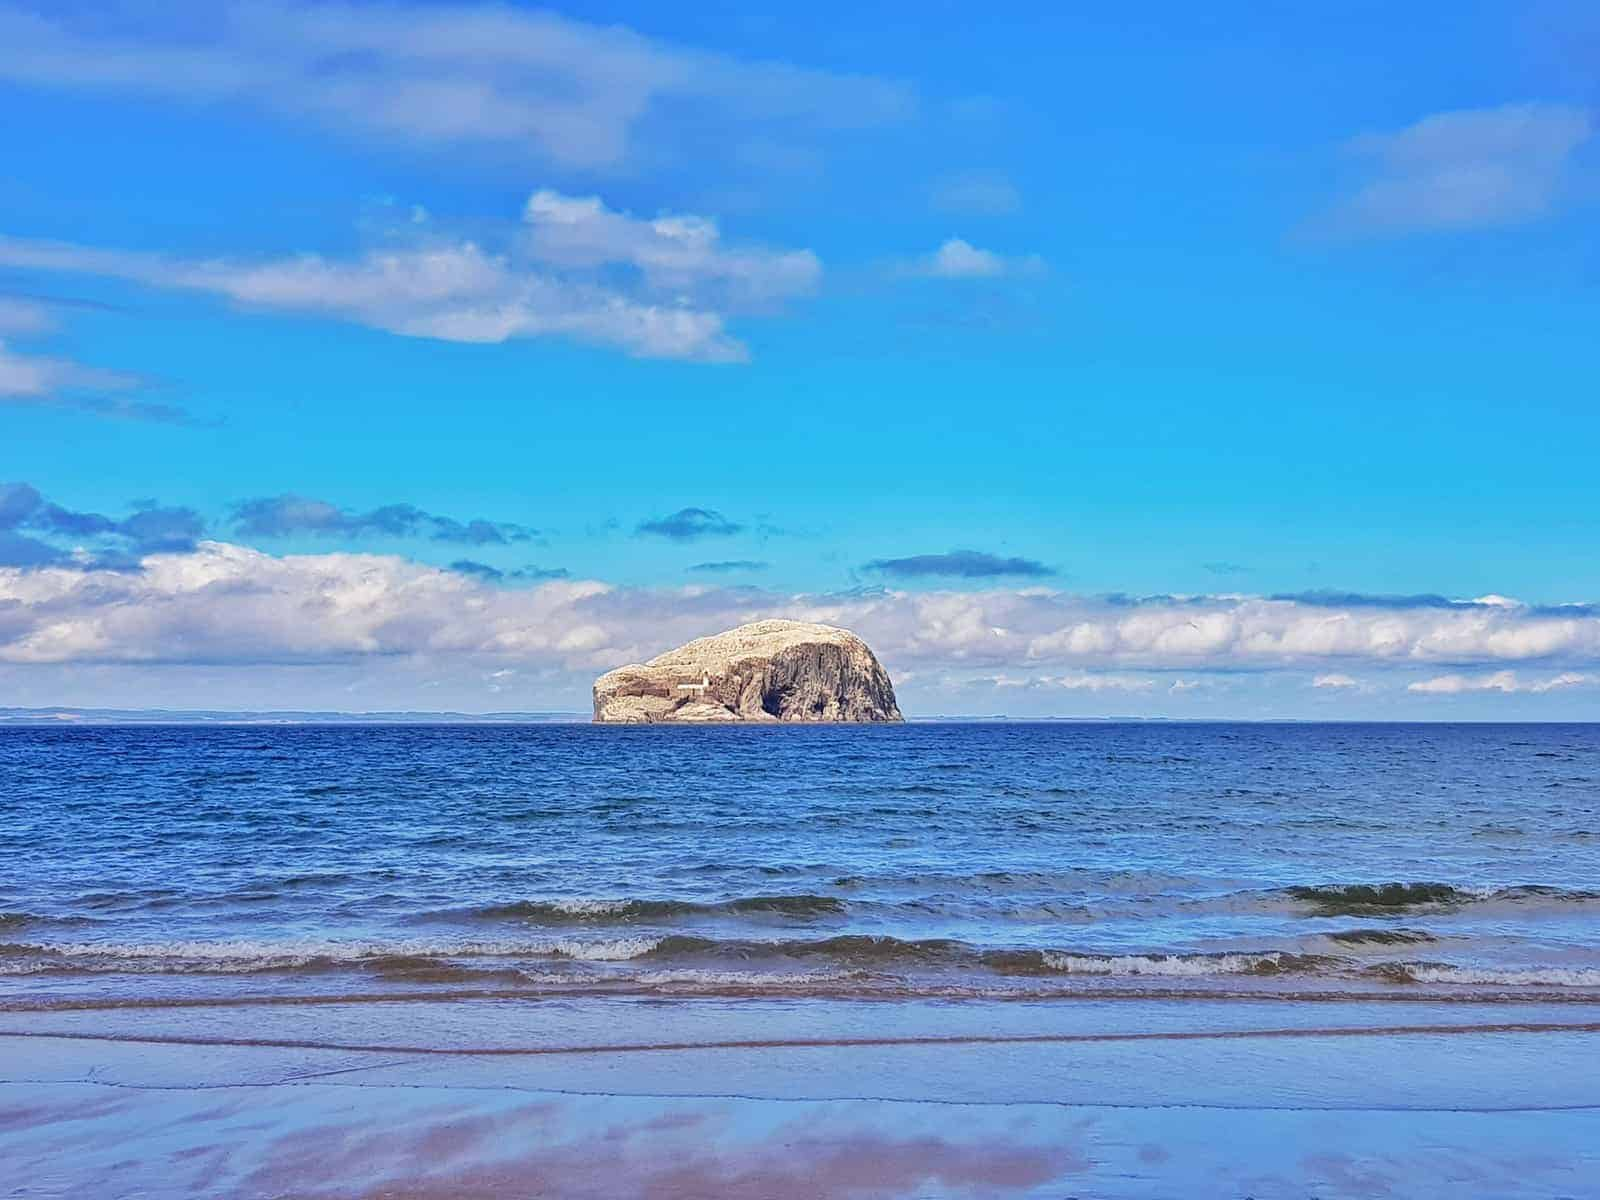 Tantallon Castle and Seacliff Beach East Lothian Scotland - Bass Rock